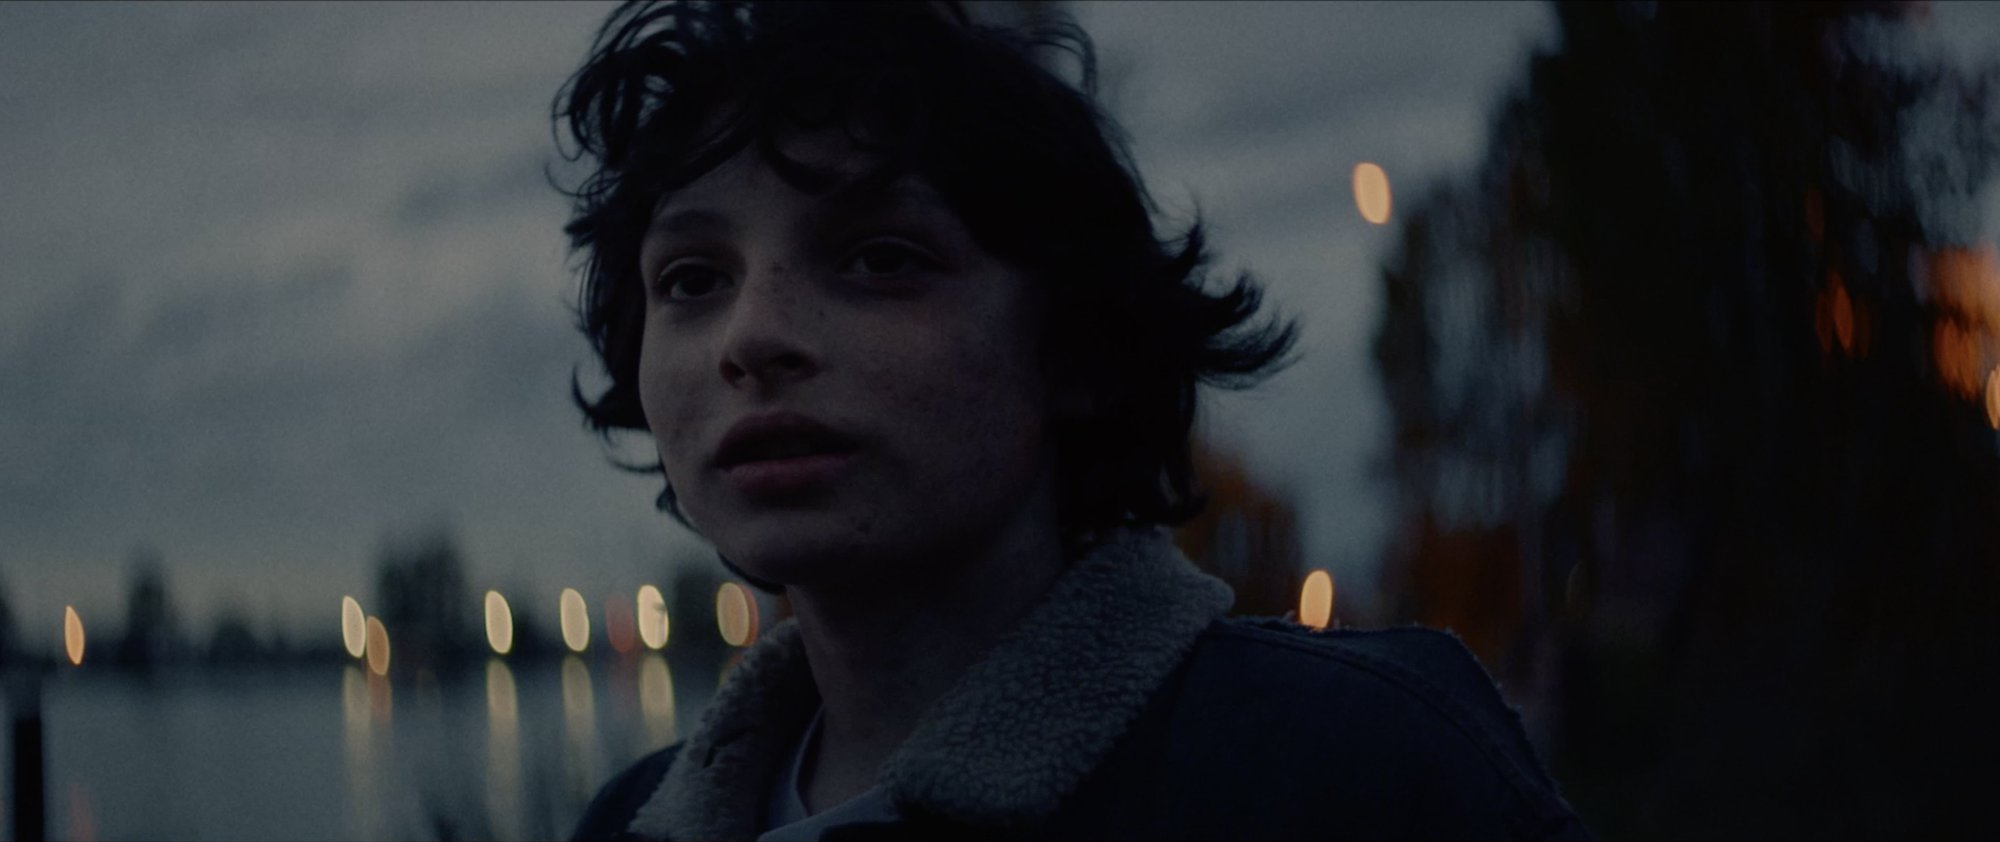 Screengrab from PUP - Sleep In The Heat featuring Finn Wolfhard, October 2016